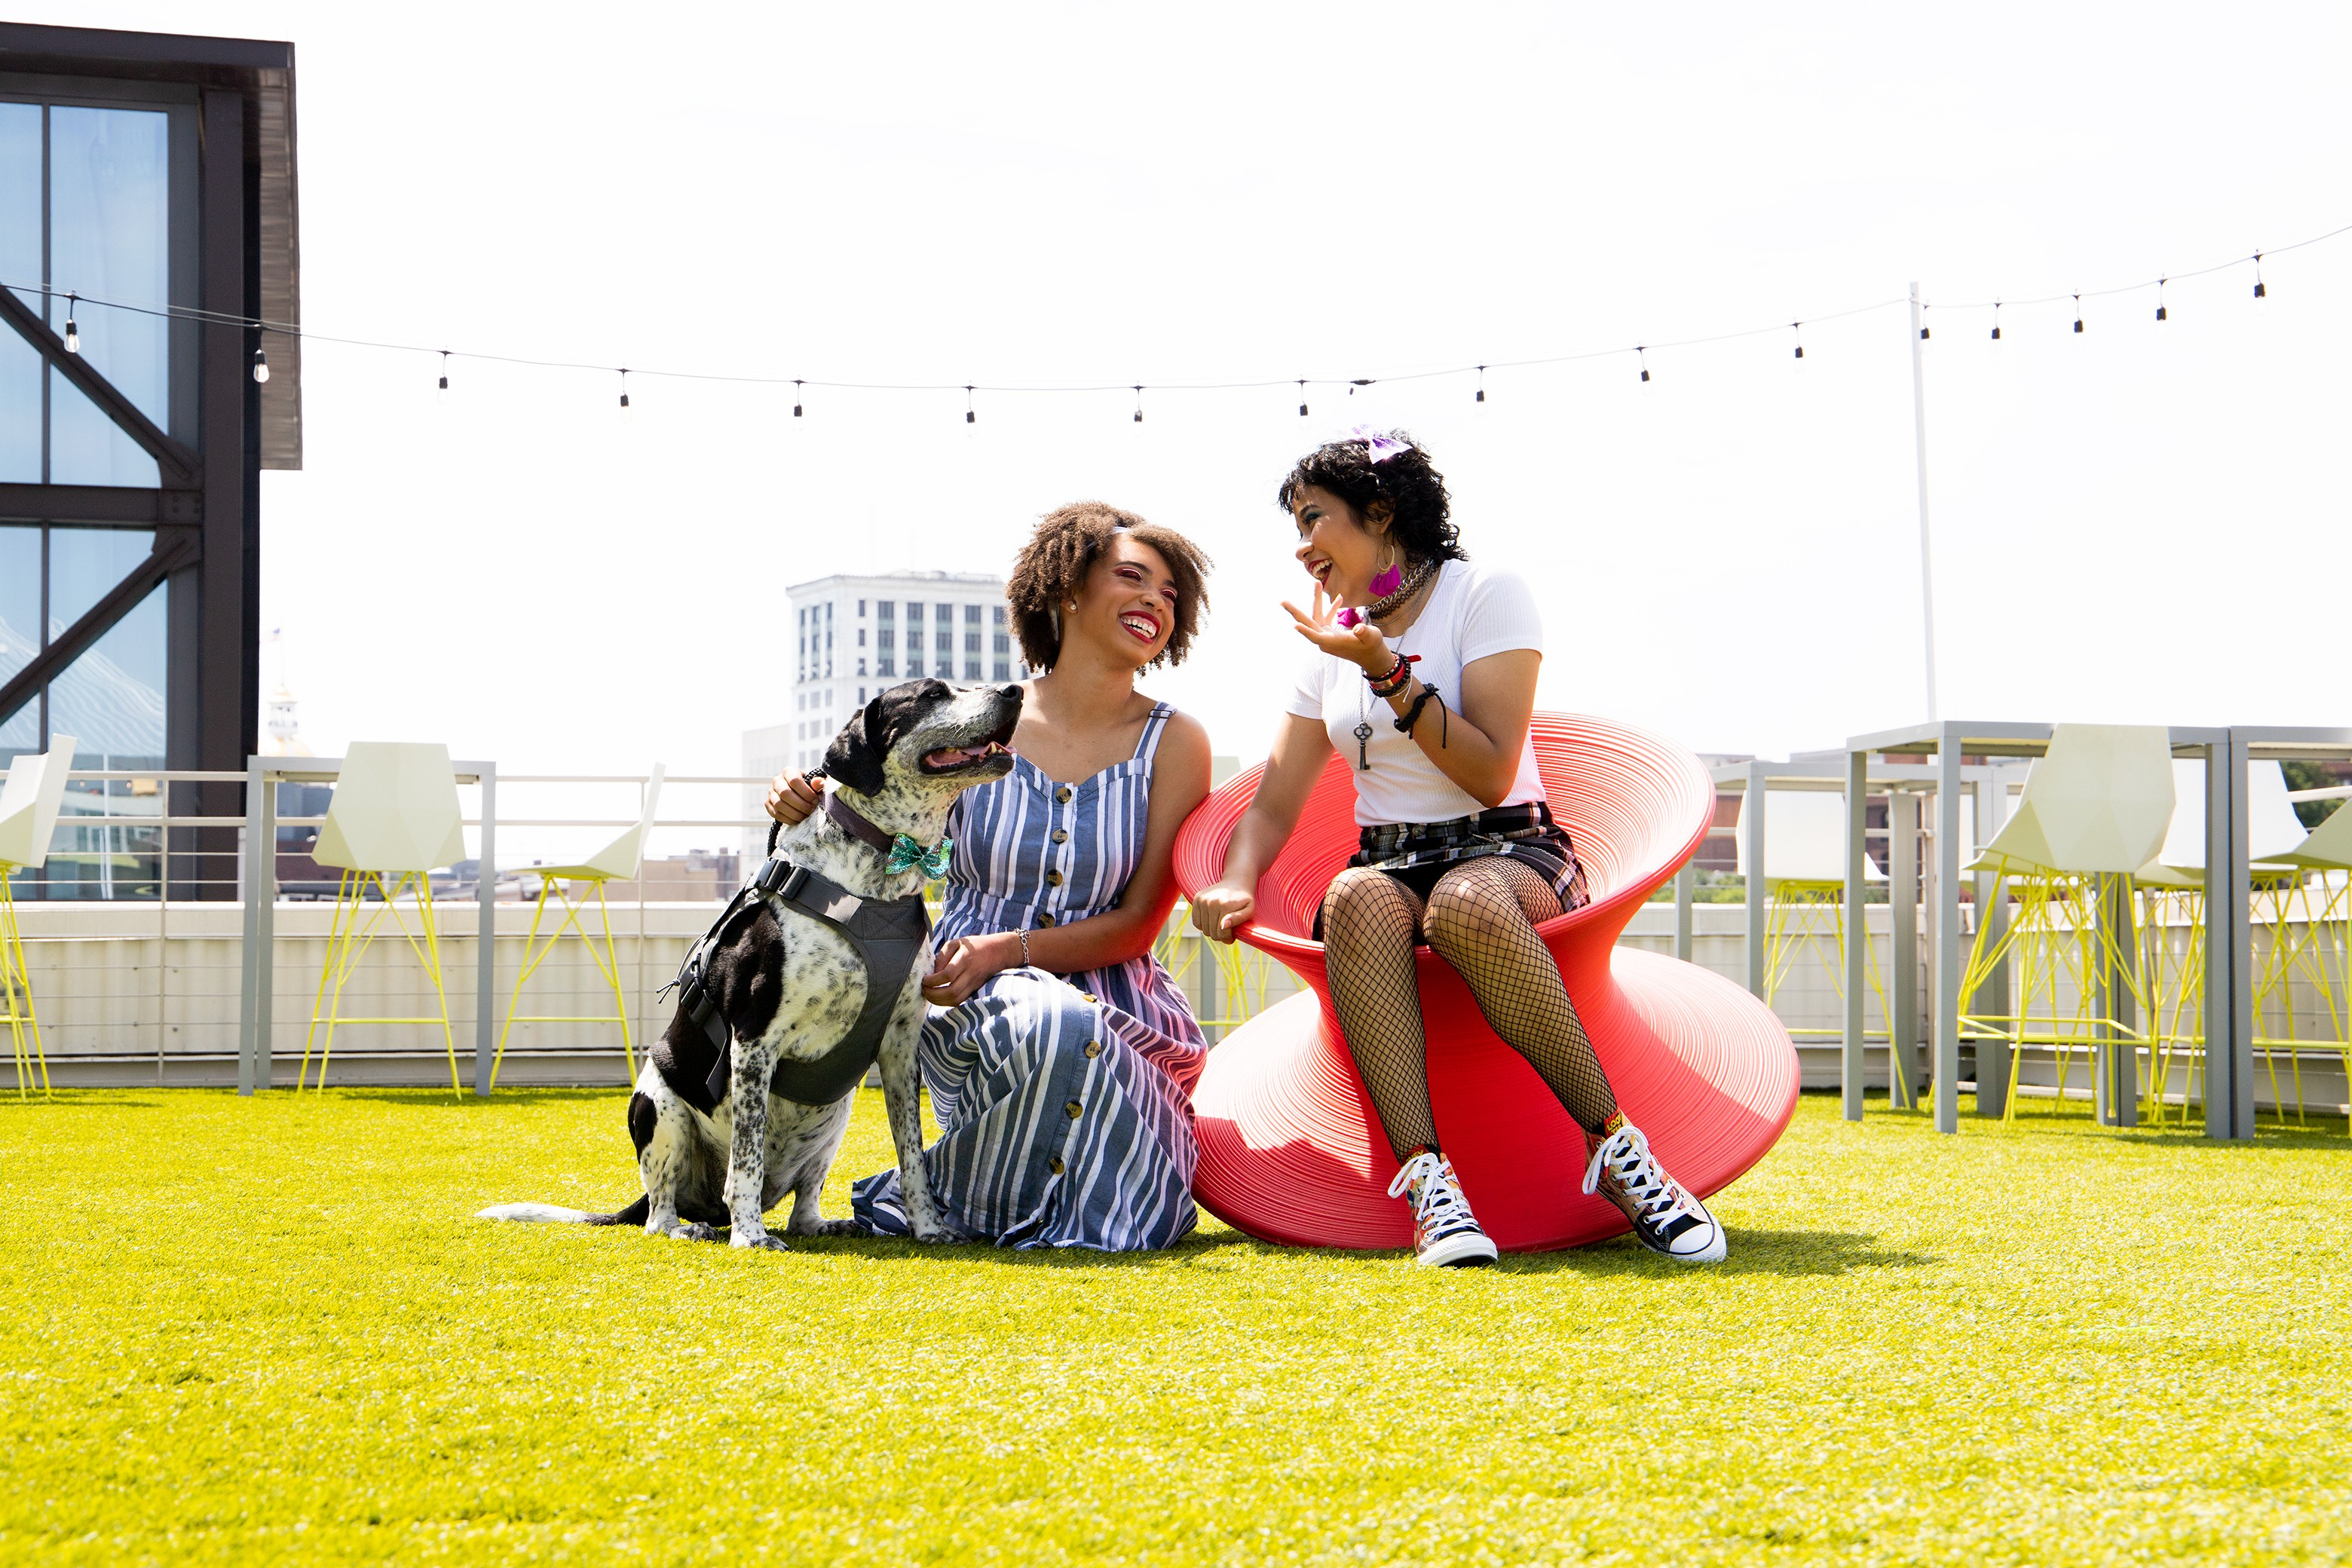 SD Gunner fund beneficiary Sadé Harris laughs with Leilani Tenan and service dog Bambi on the lawn at Electric Moon at Plant Riverside. - PHOTO BY HUNTER MCCUMBER